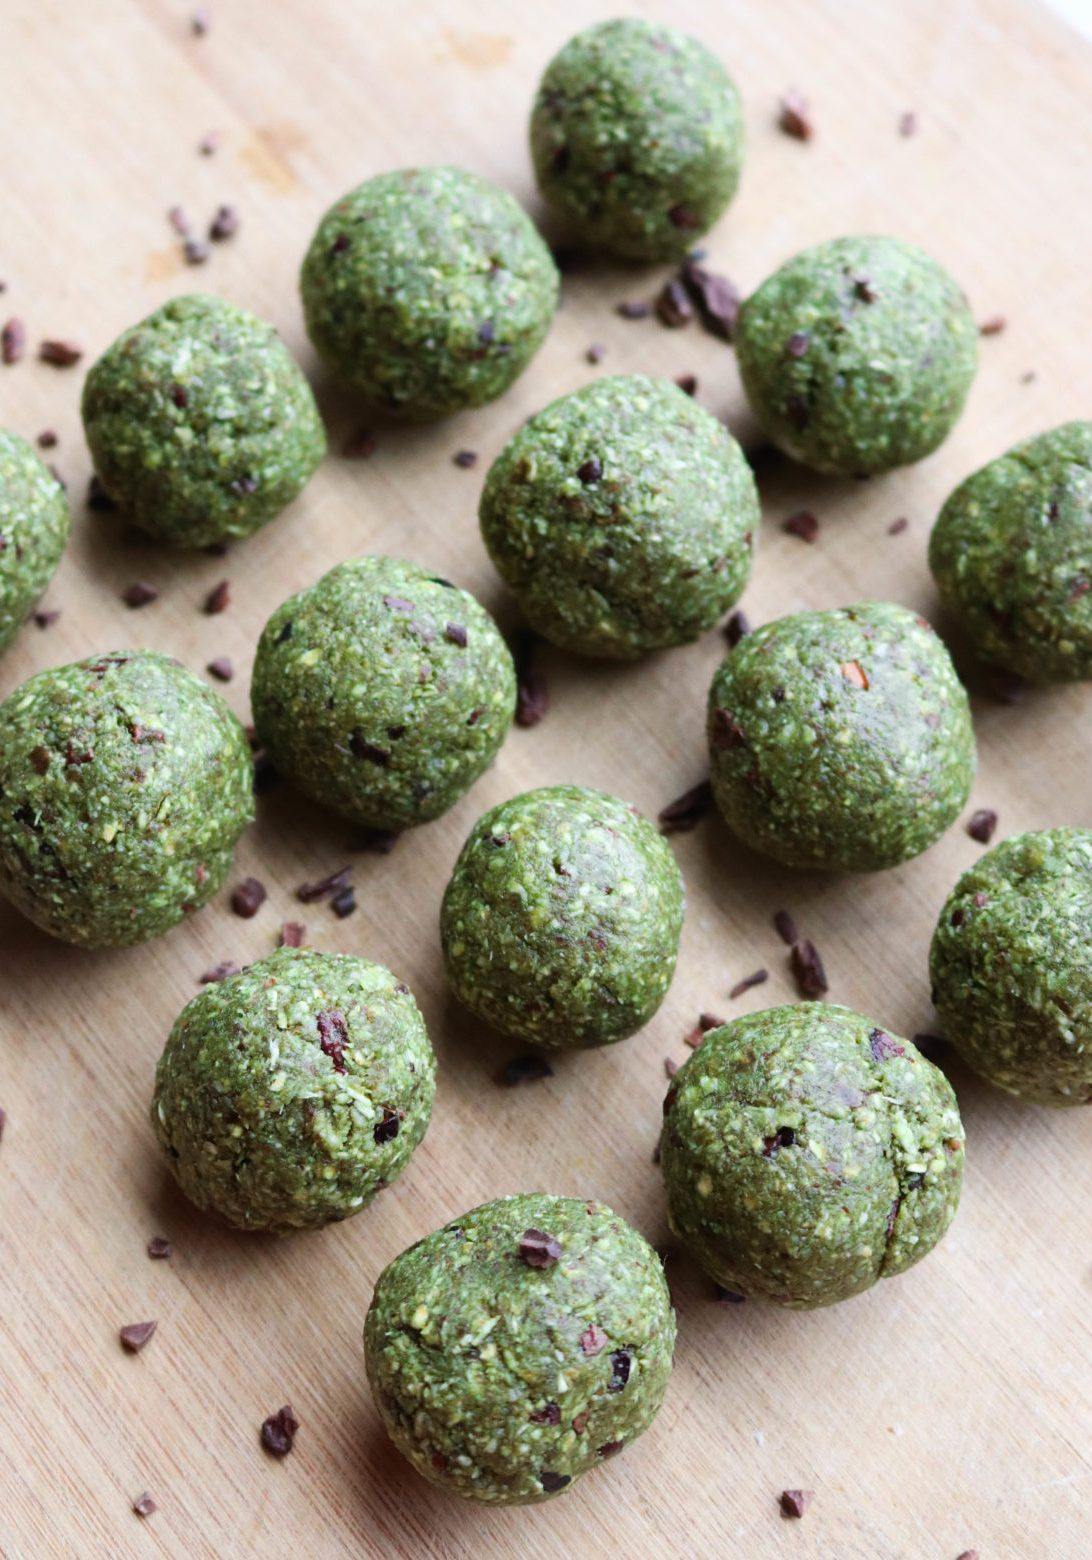 Coconut_Matcha_Chocolate_Chip_Bliss_Balls_FromMyBowl-3-1170x1560